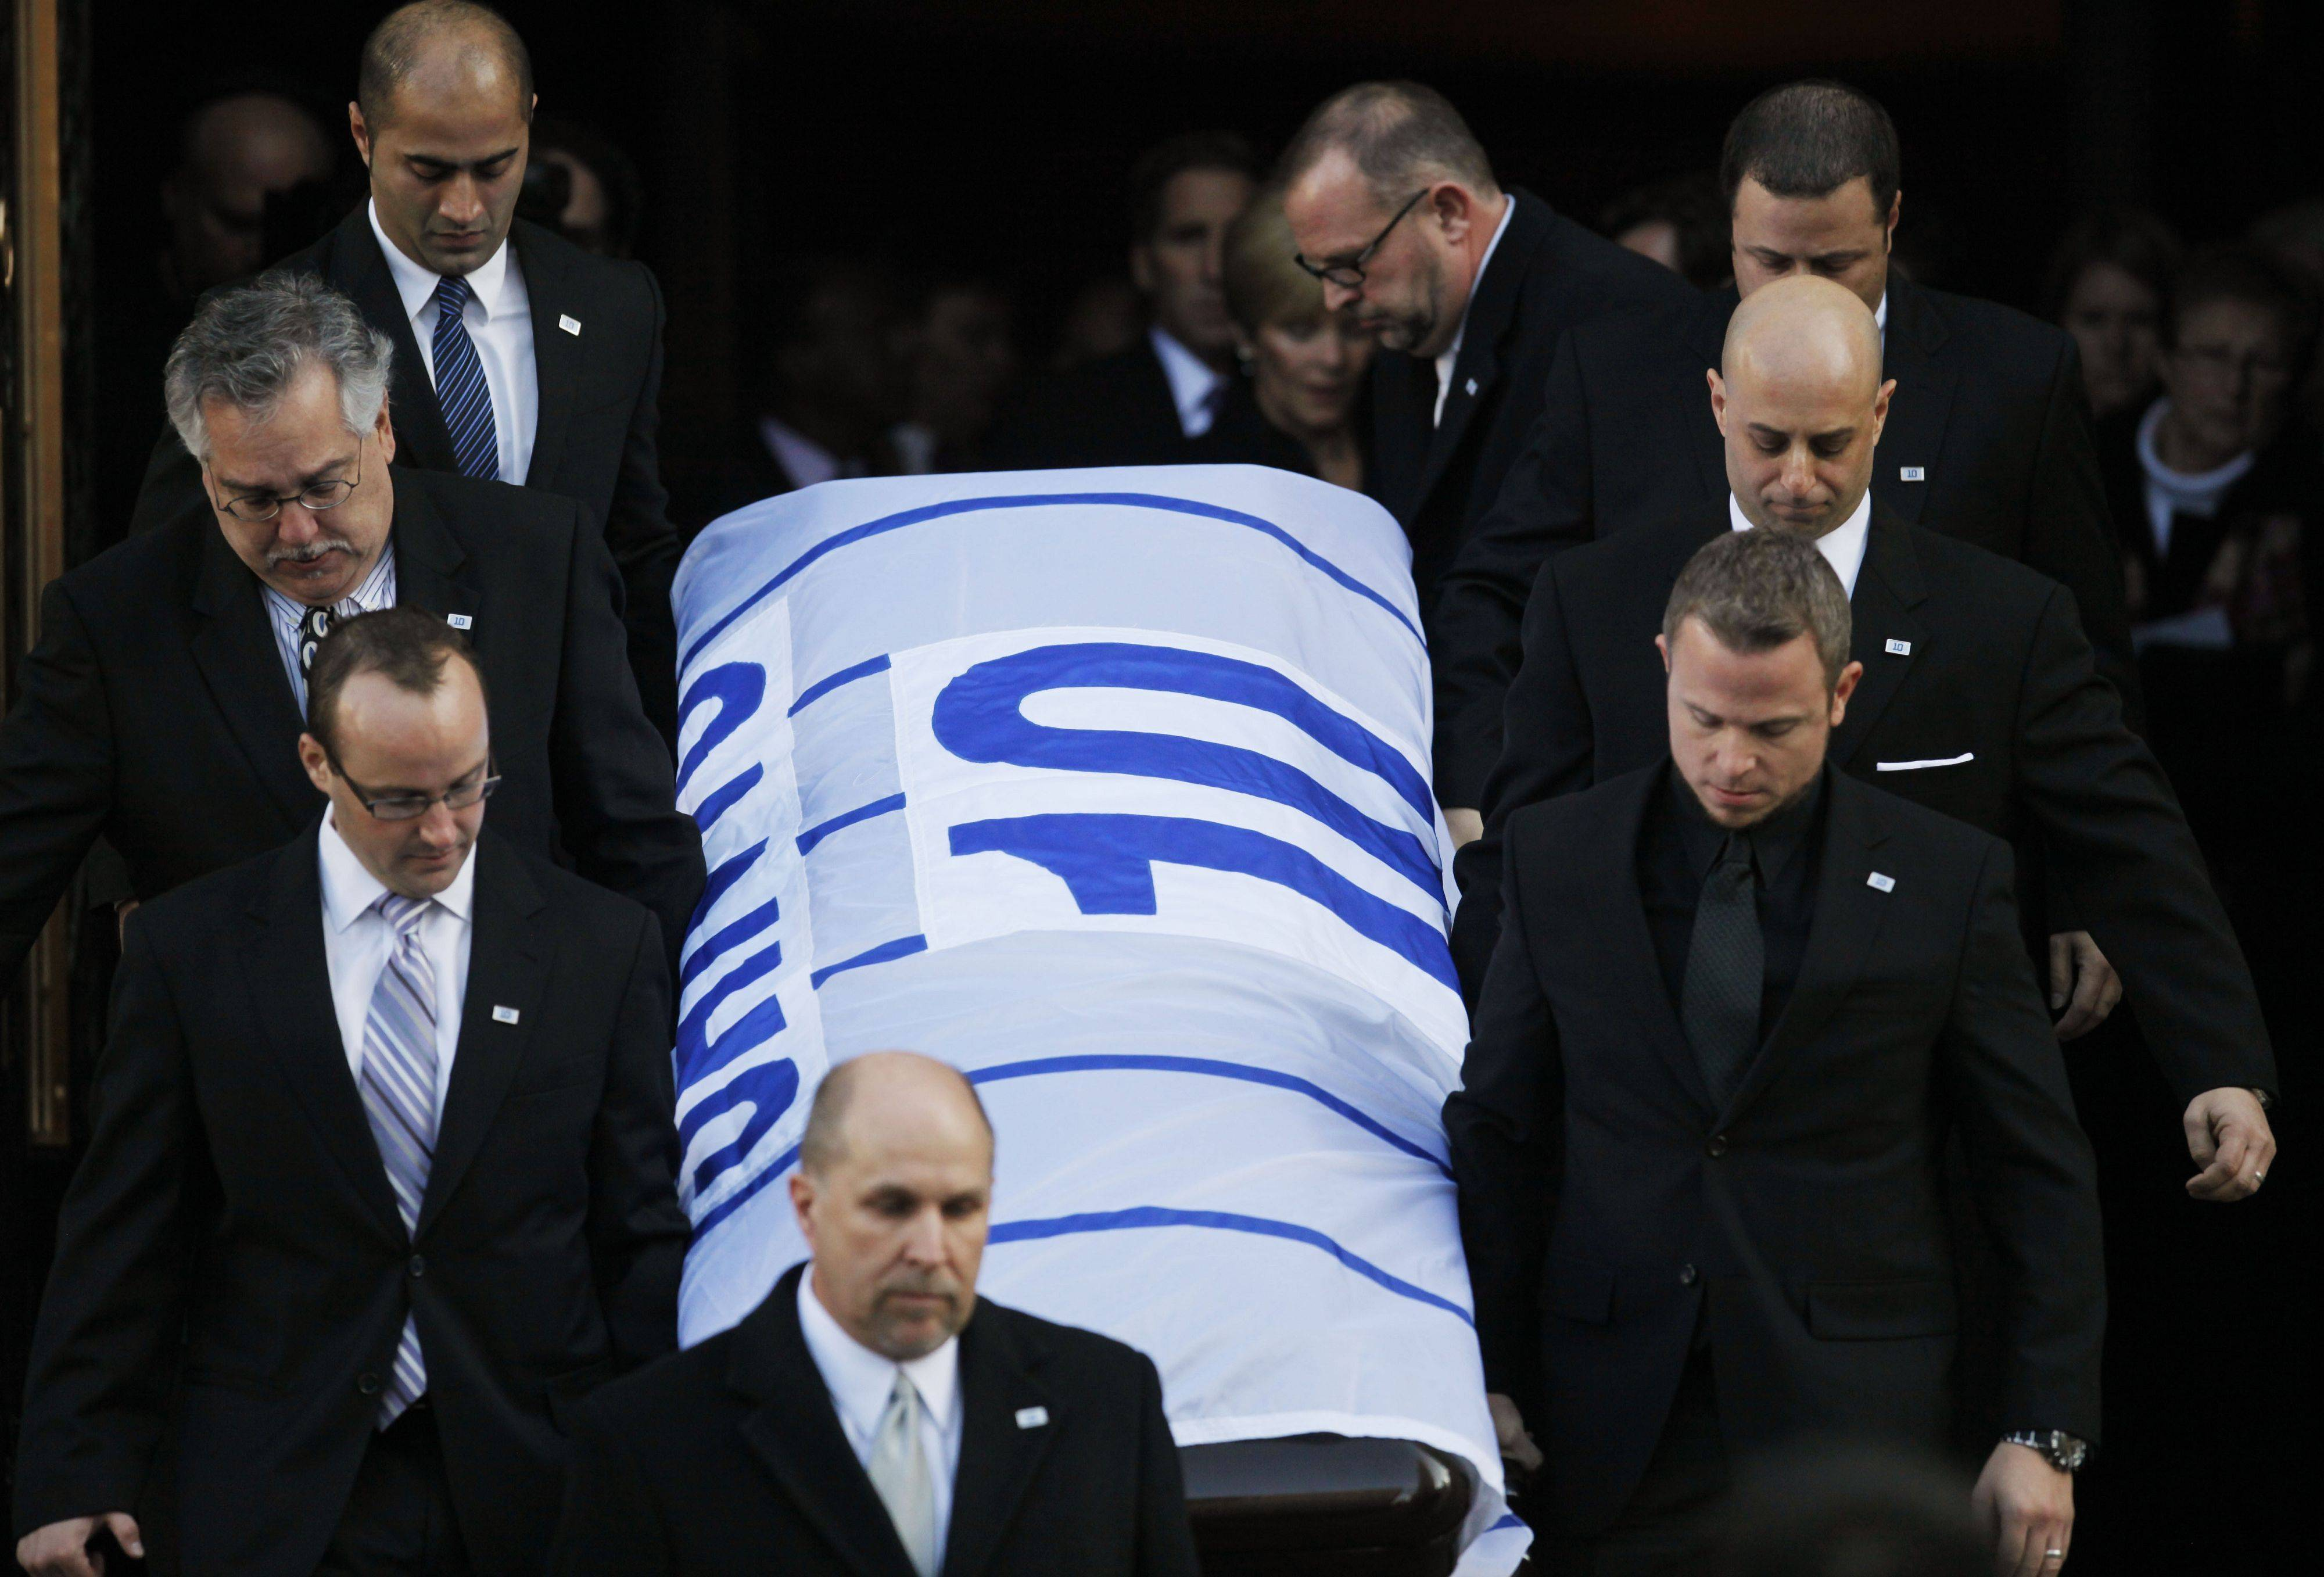 Pallbearers remove the casket of Ron Santo from Holy Name Cathedral after funeral services on Friday.